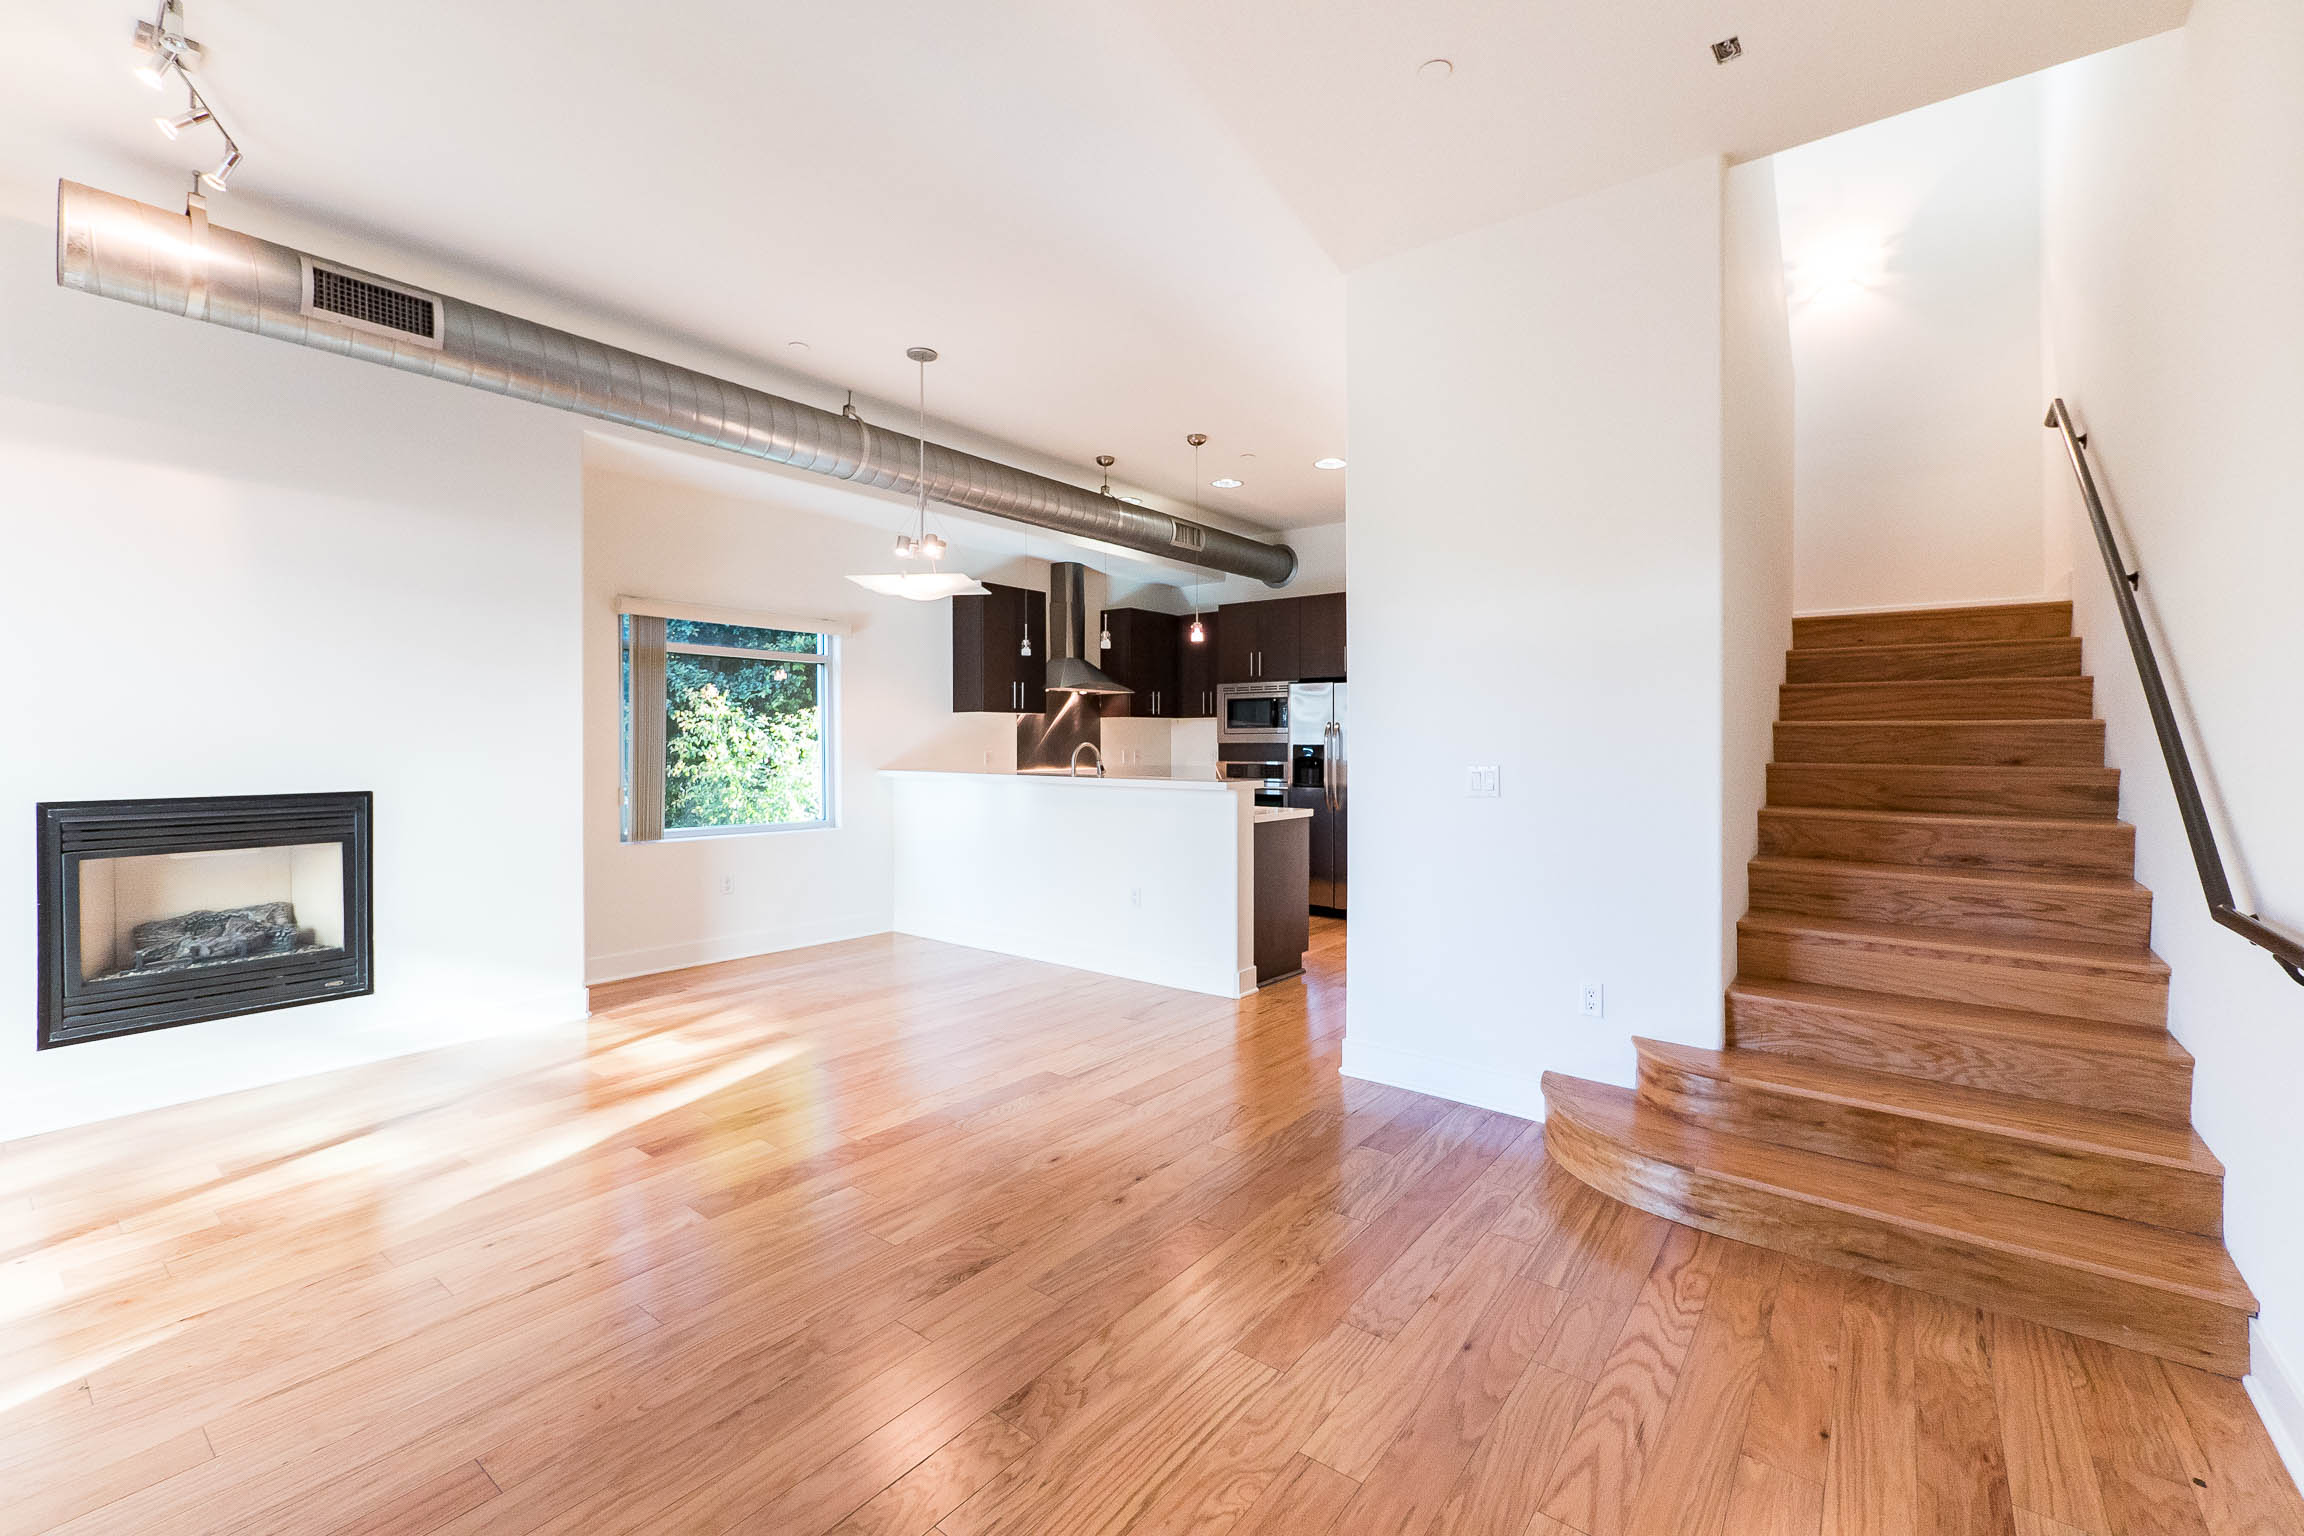 ULTRA MODERN AND SUPER STYLISH Two story LOFT SPACE / 1400 SQ FT/ 2 Bedrooms/ ALL APPLIANCES INCLUDED!